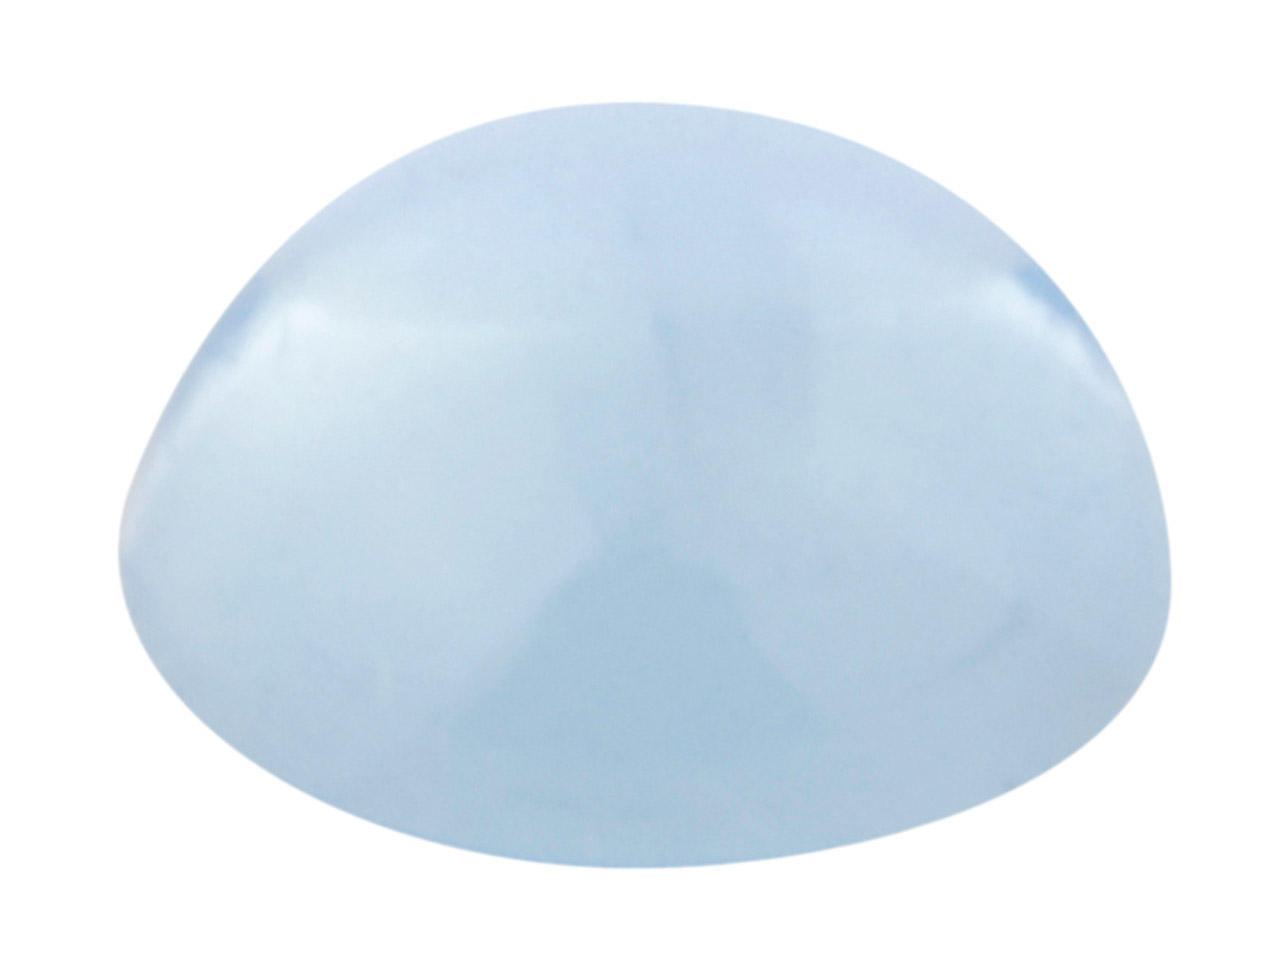 Sky Blue Topaz, Round Cabochon 5mm, Treated